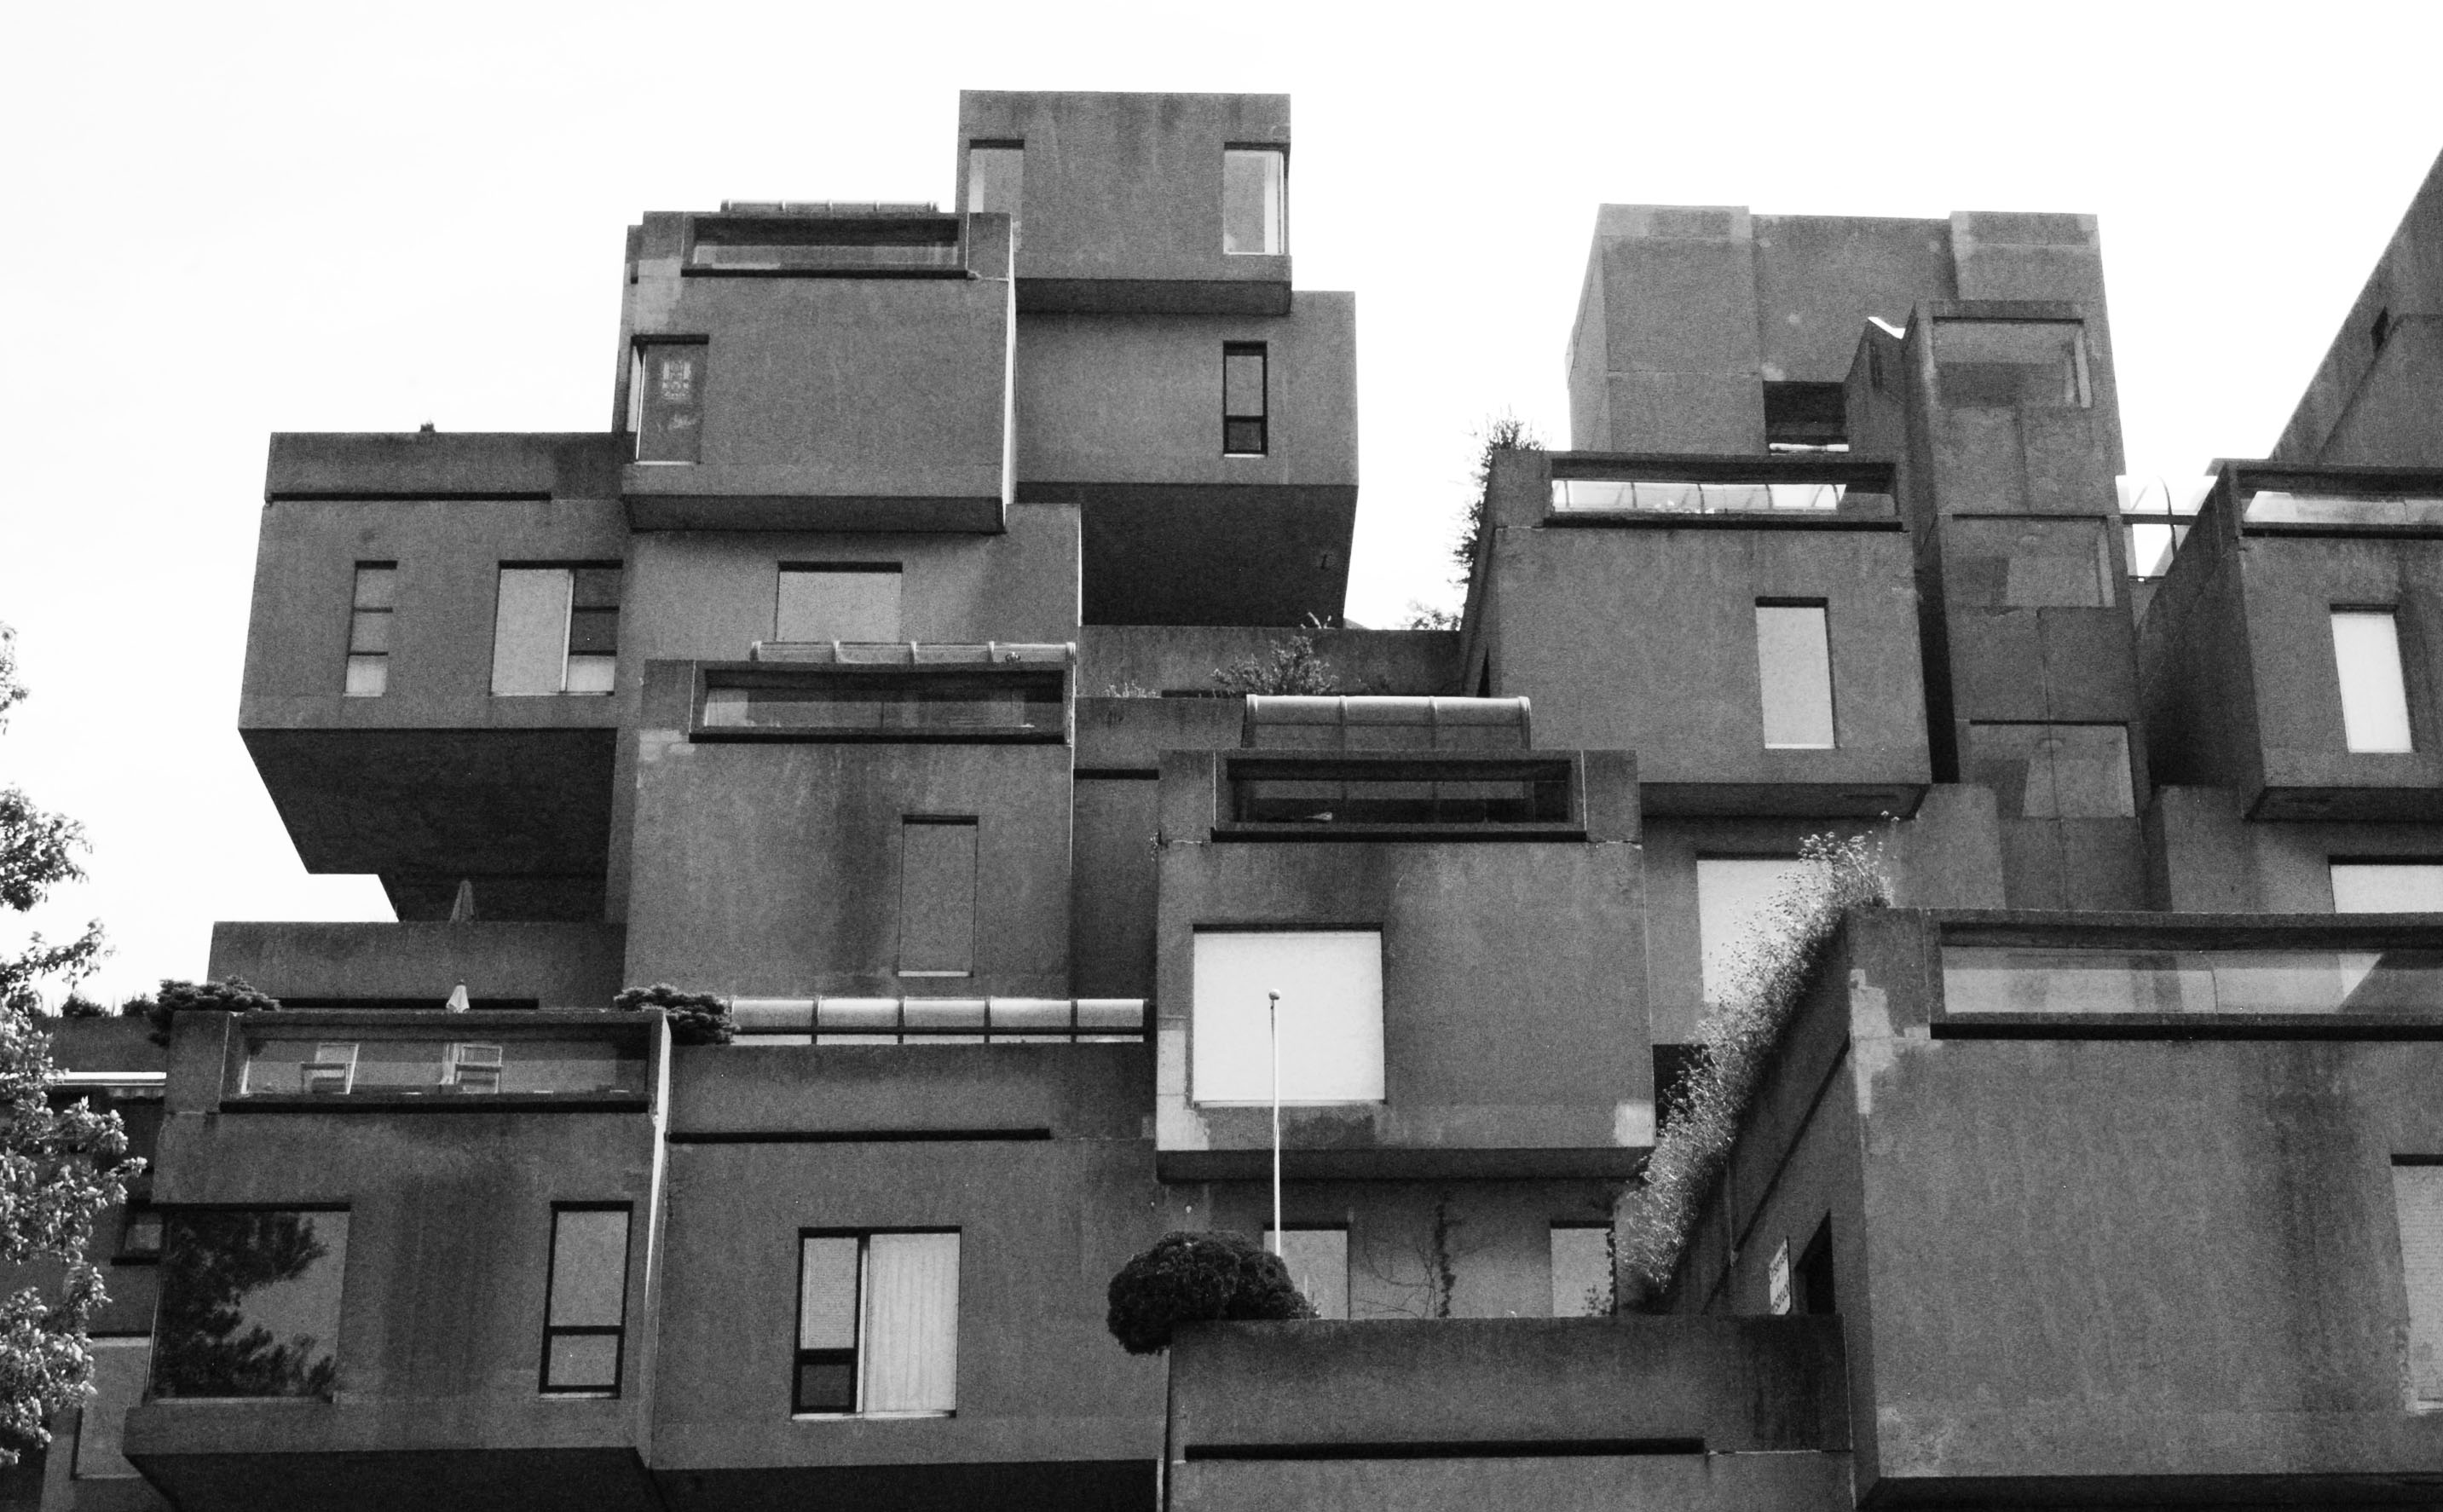 Point architecture l 39 habitat 67 andycurly compagnie for Habitat 67 architecture